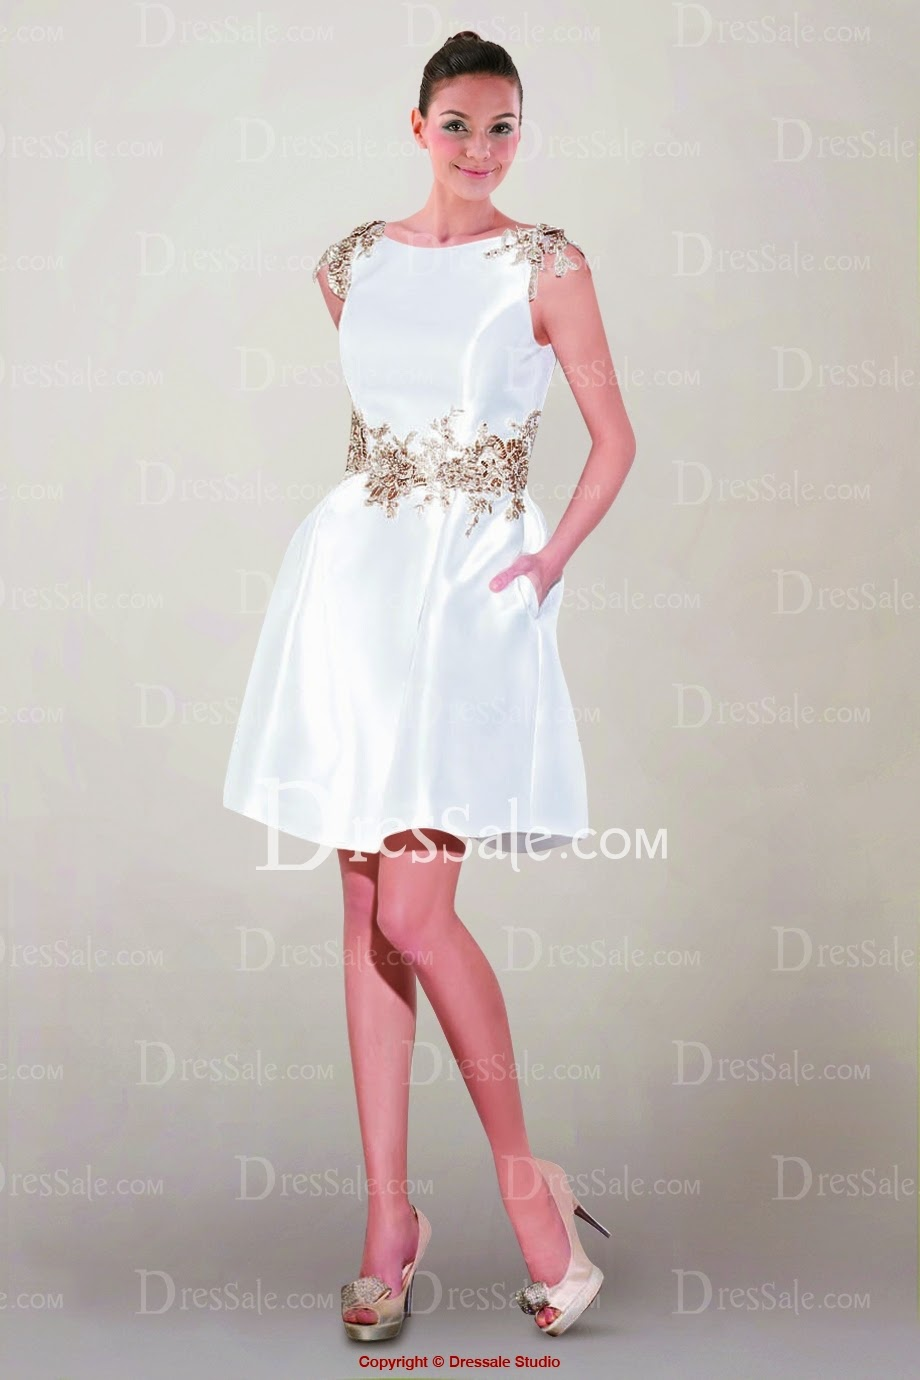 http://www.dressale.com/lovely-mini-satin-wedding-gown-featuring-contrasting-appliques-and-double-bowtie-back-p-89963.html